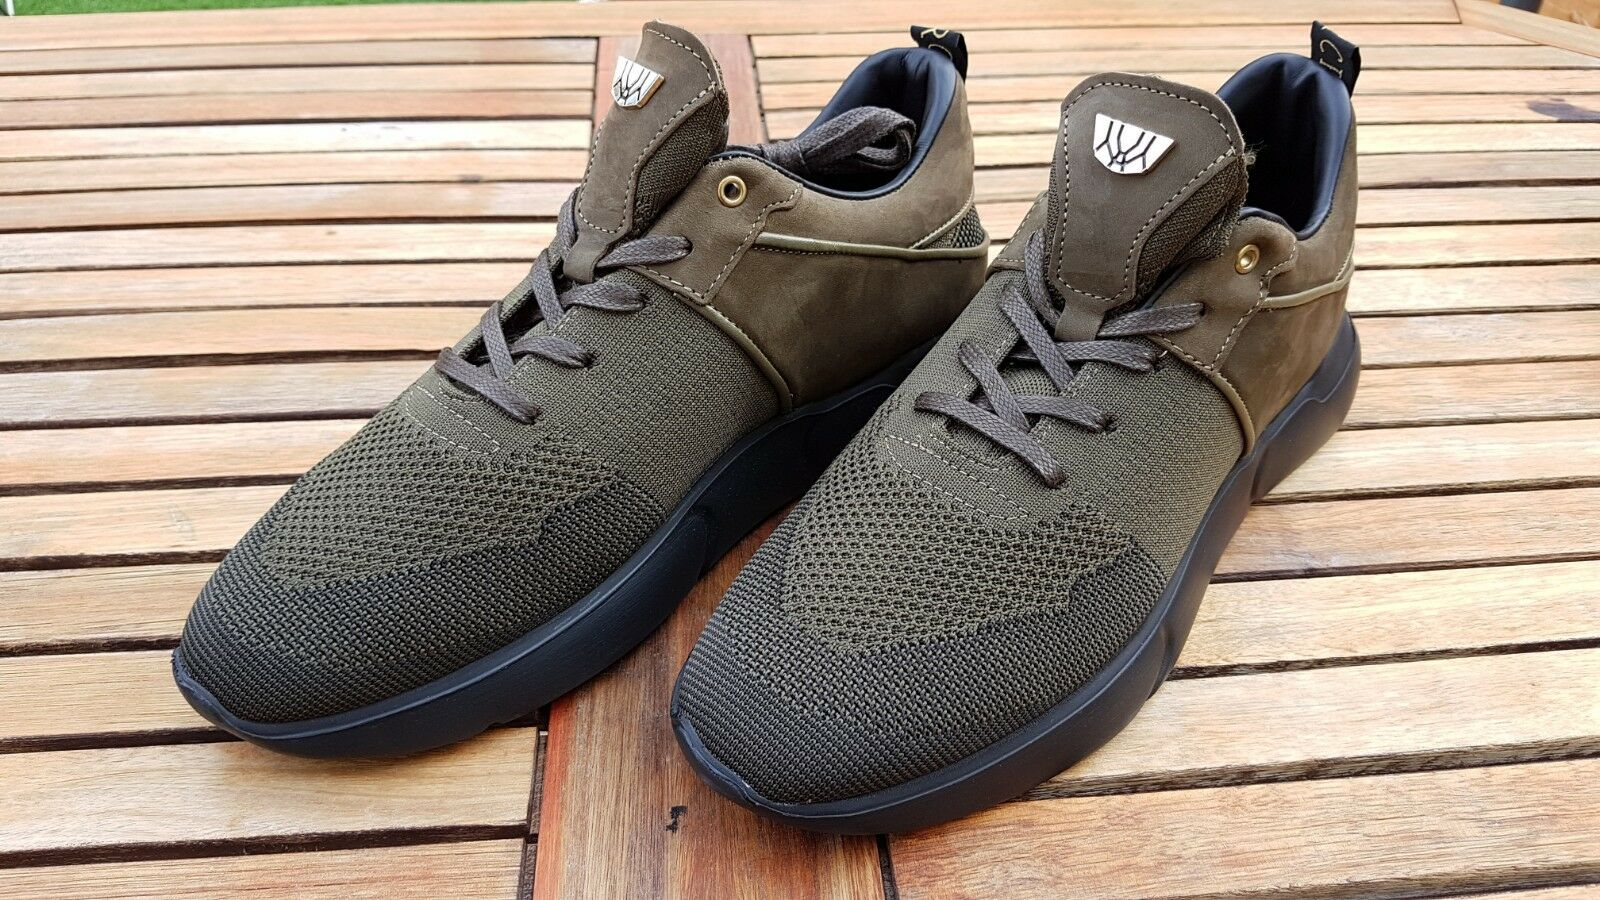 Mercer Amsterdam WOOSTER EVO Olive Chaussure TRAINER baskets Taille  UK 10 EU 44